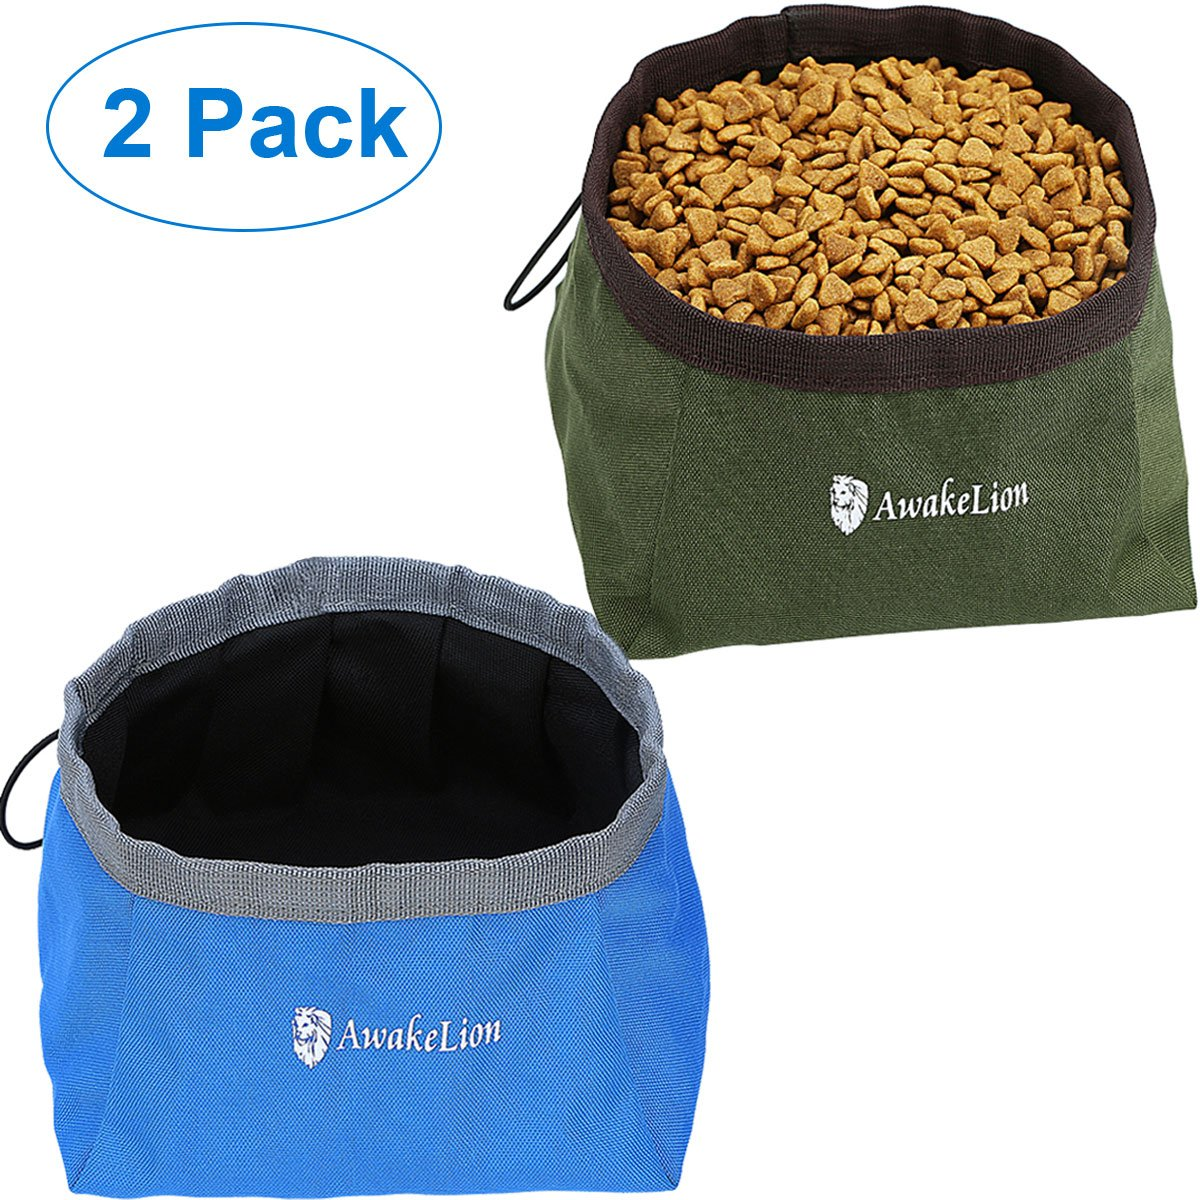 Collapsible Dog Bowl, Awakelion Portable Foldable Travel Pet Bowl For Food And Water (Green+Blue)